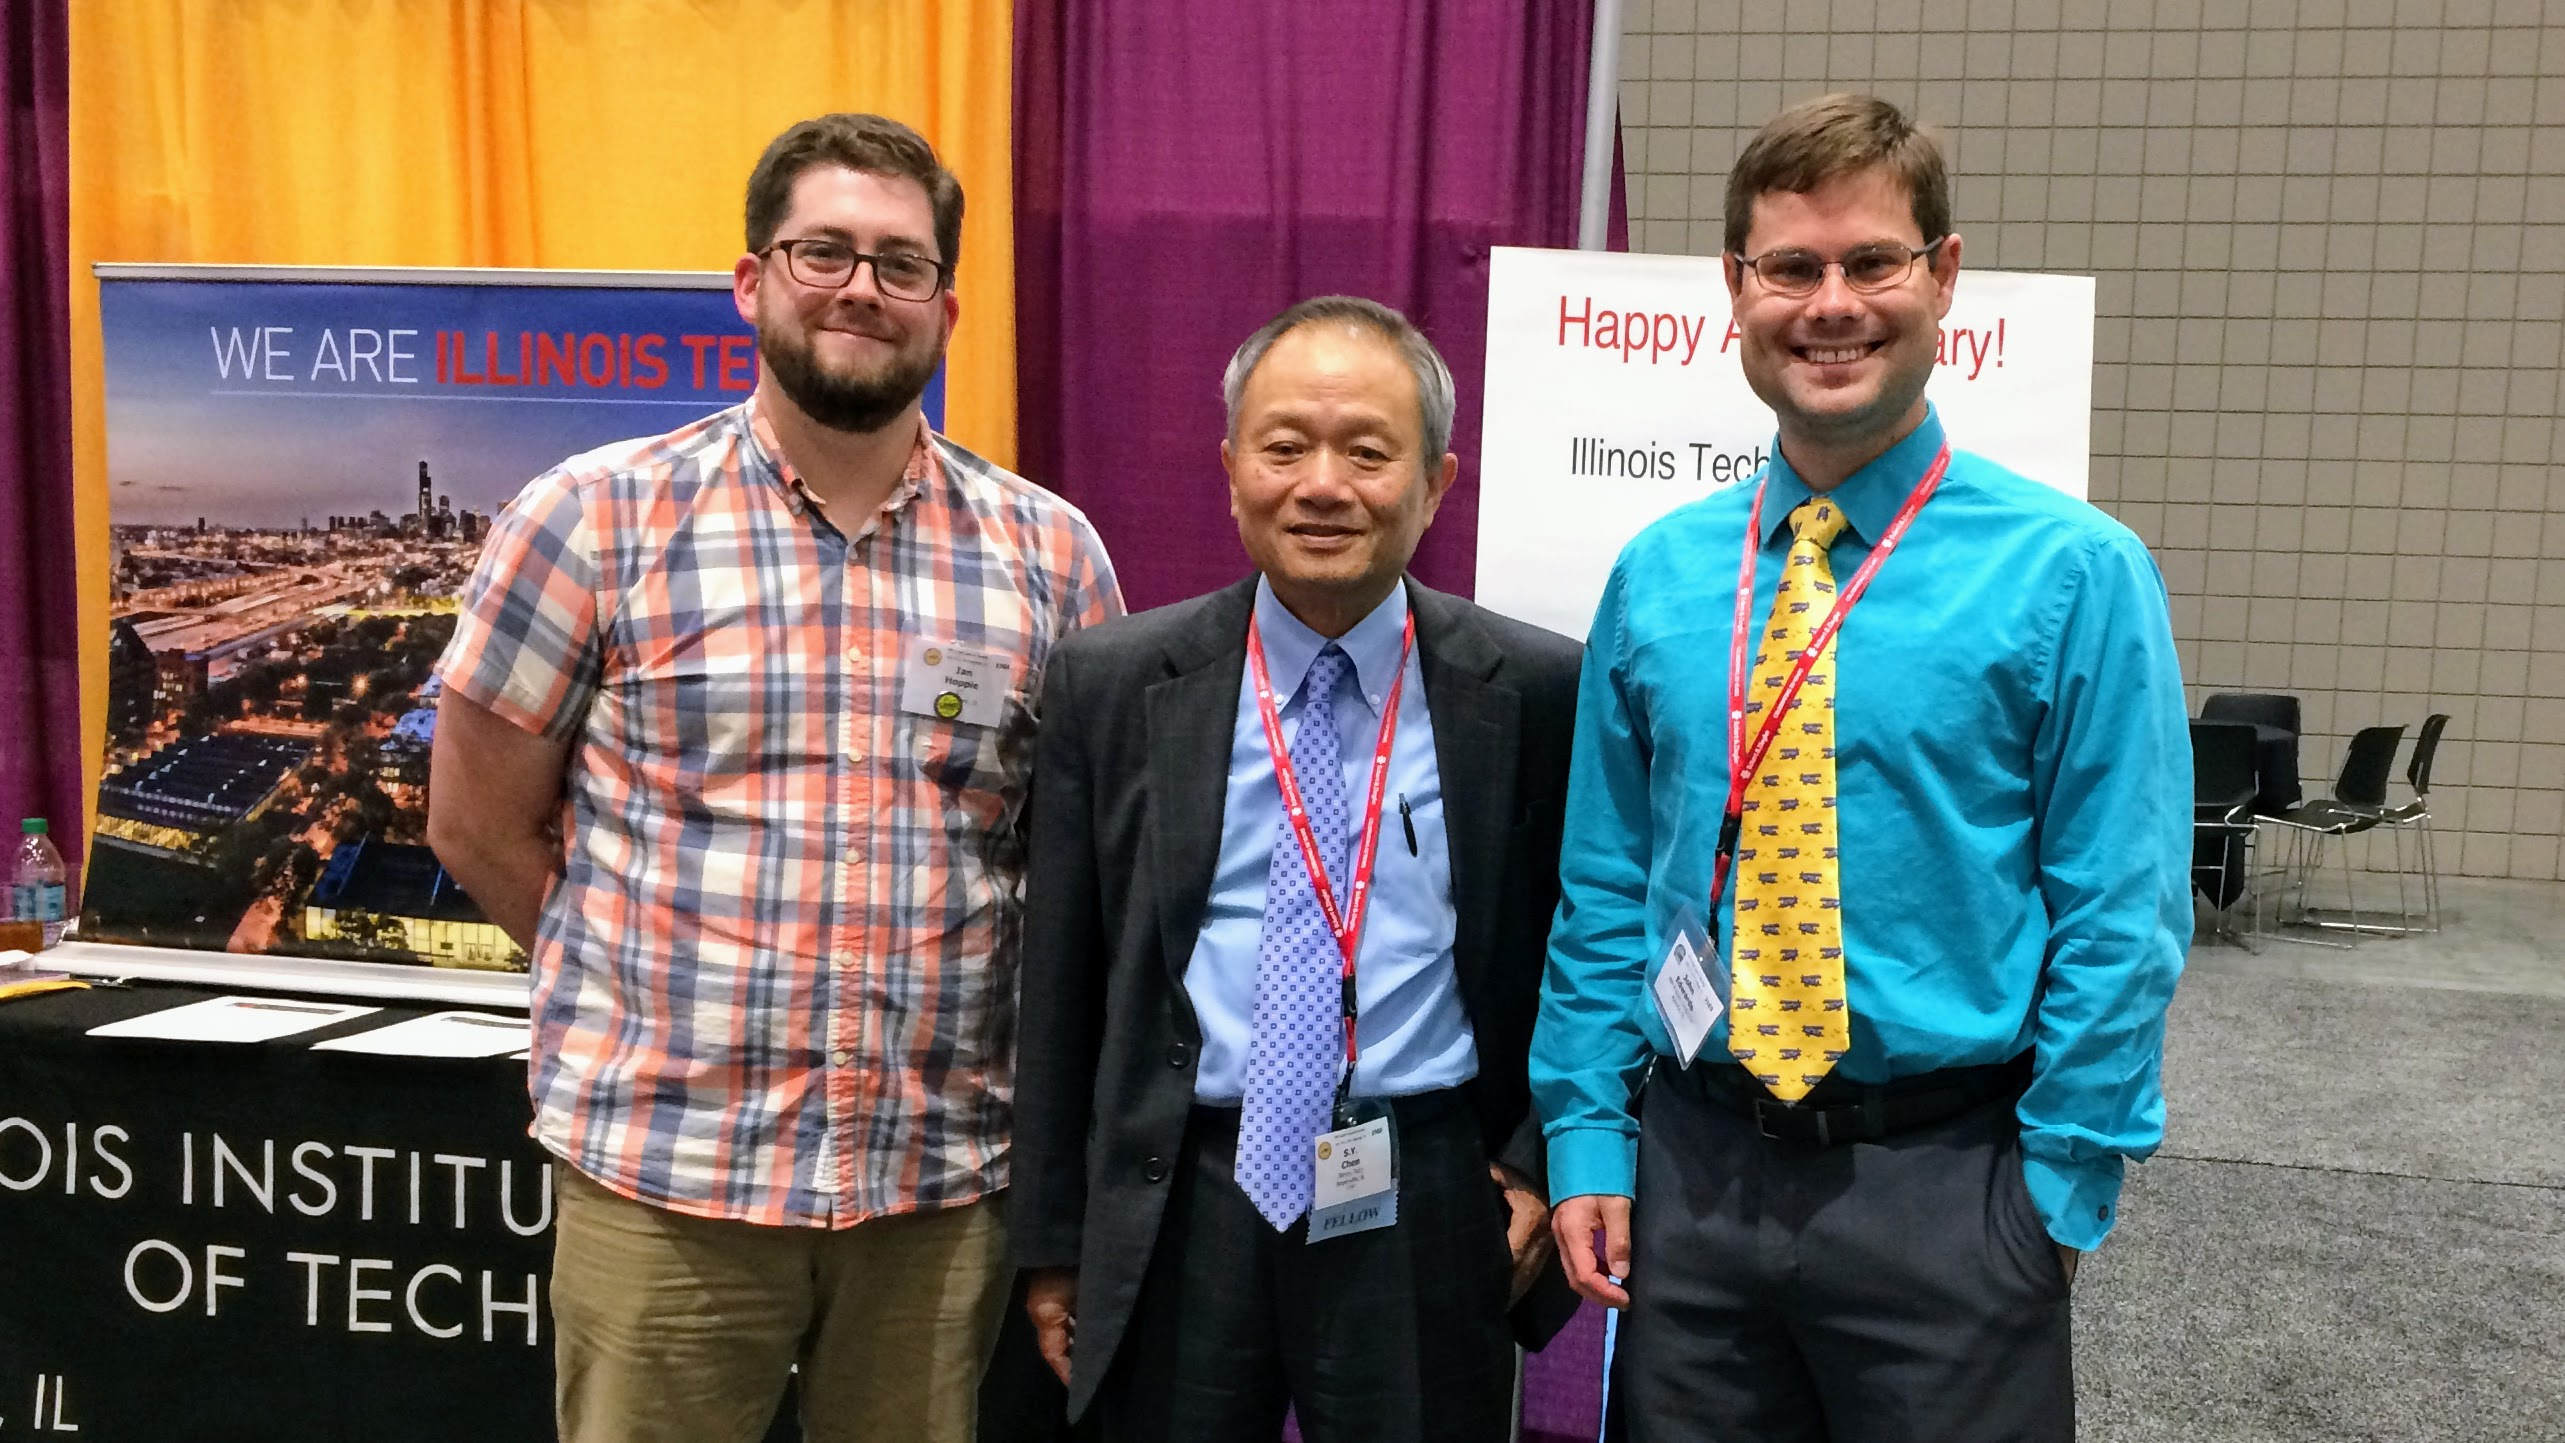 Ian Hoppie, S.Y. Chen, and Jon Edwards at the 2017 Health Physics Society Meeting in Raleigh, NC.